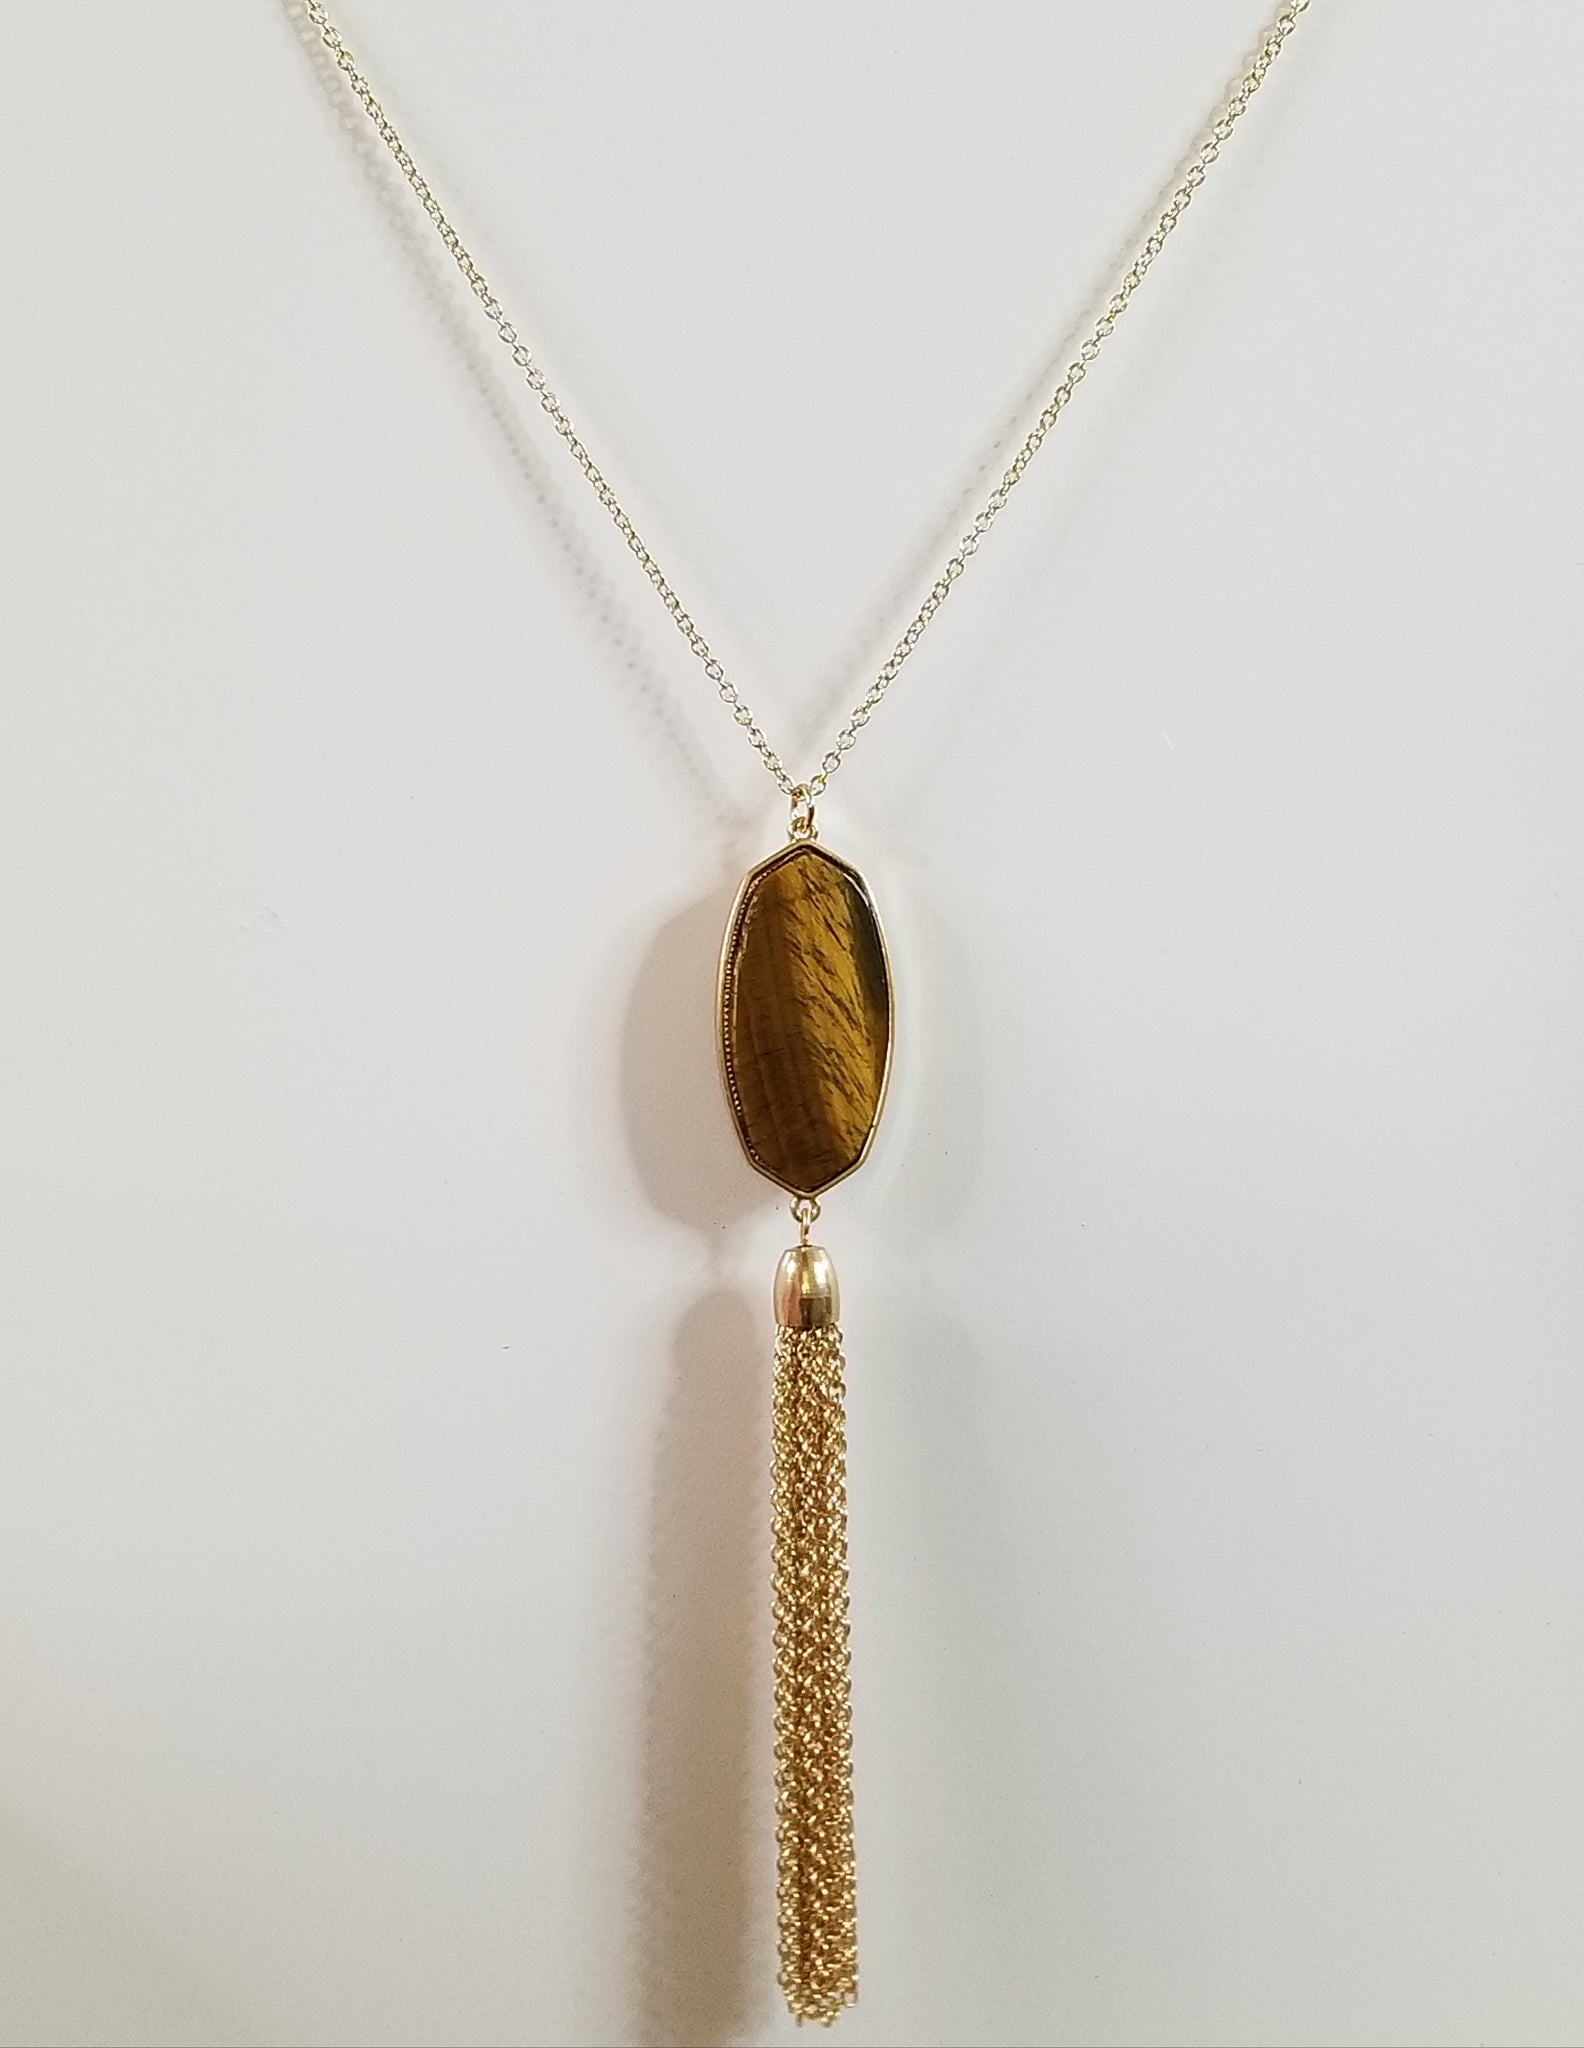 Sophia - Tigers Eye Necklace